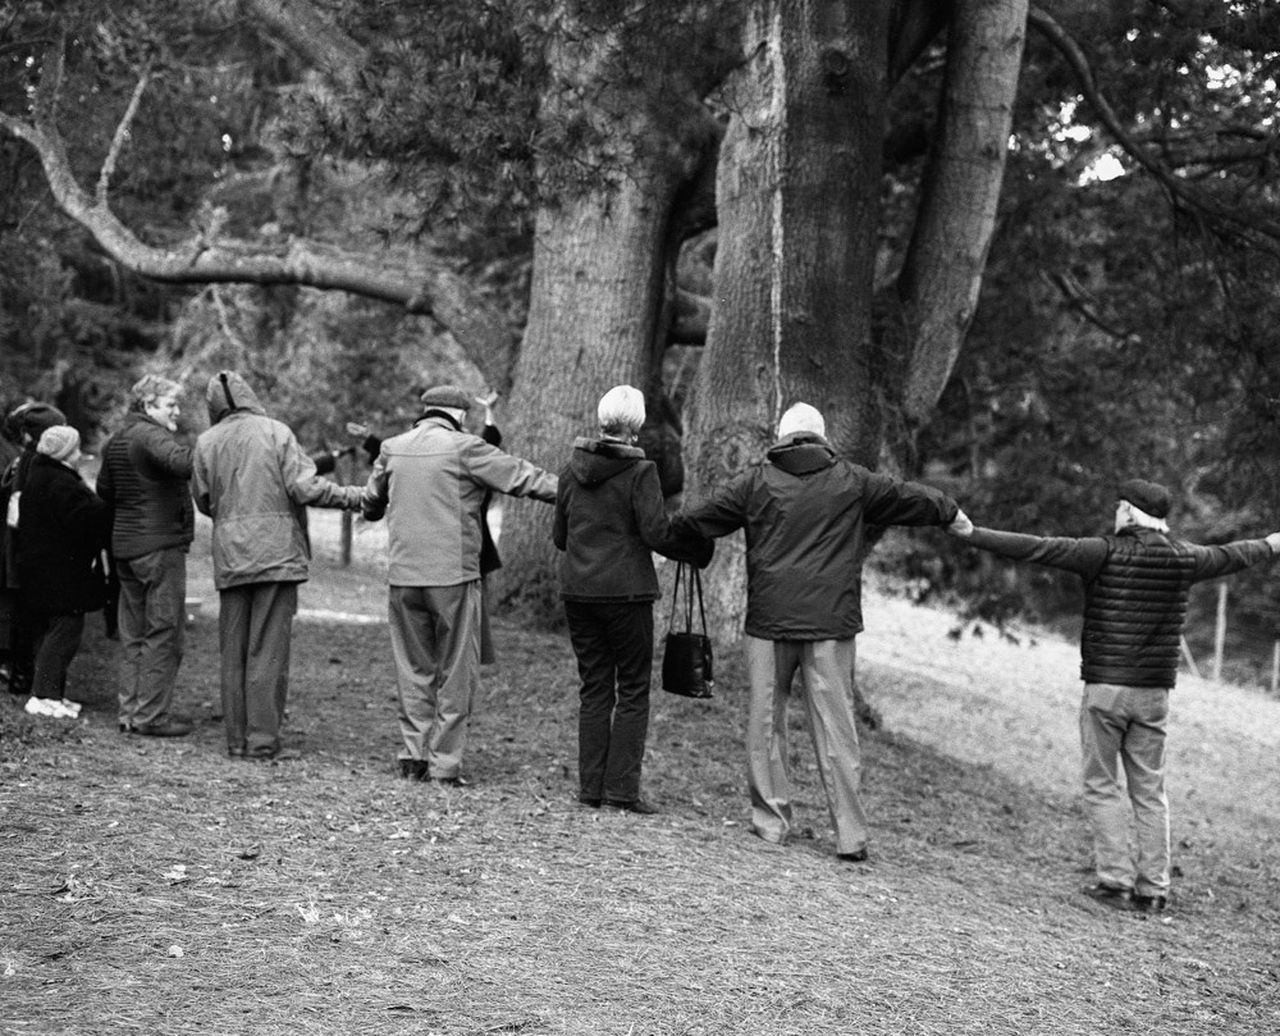 tree, rear view, men, full length, group of people, nature, women, real people, outdoors, standing, day, growth, forest, large group of people, adults only, people, adult, young adult